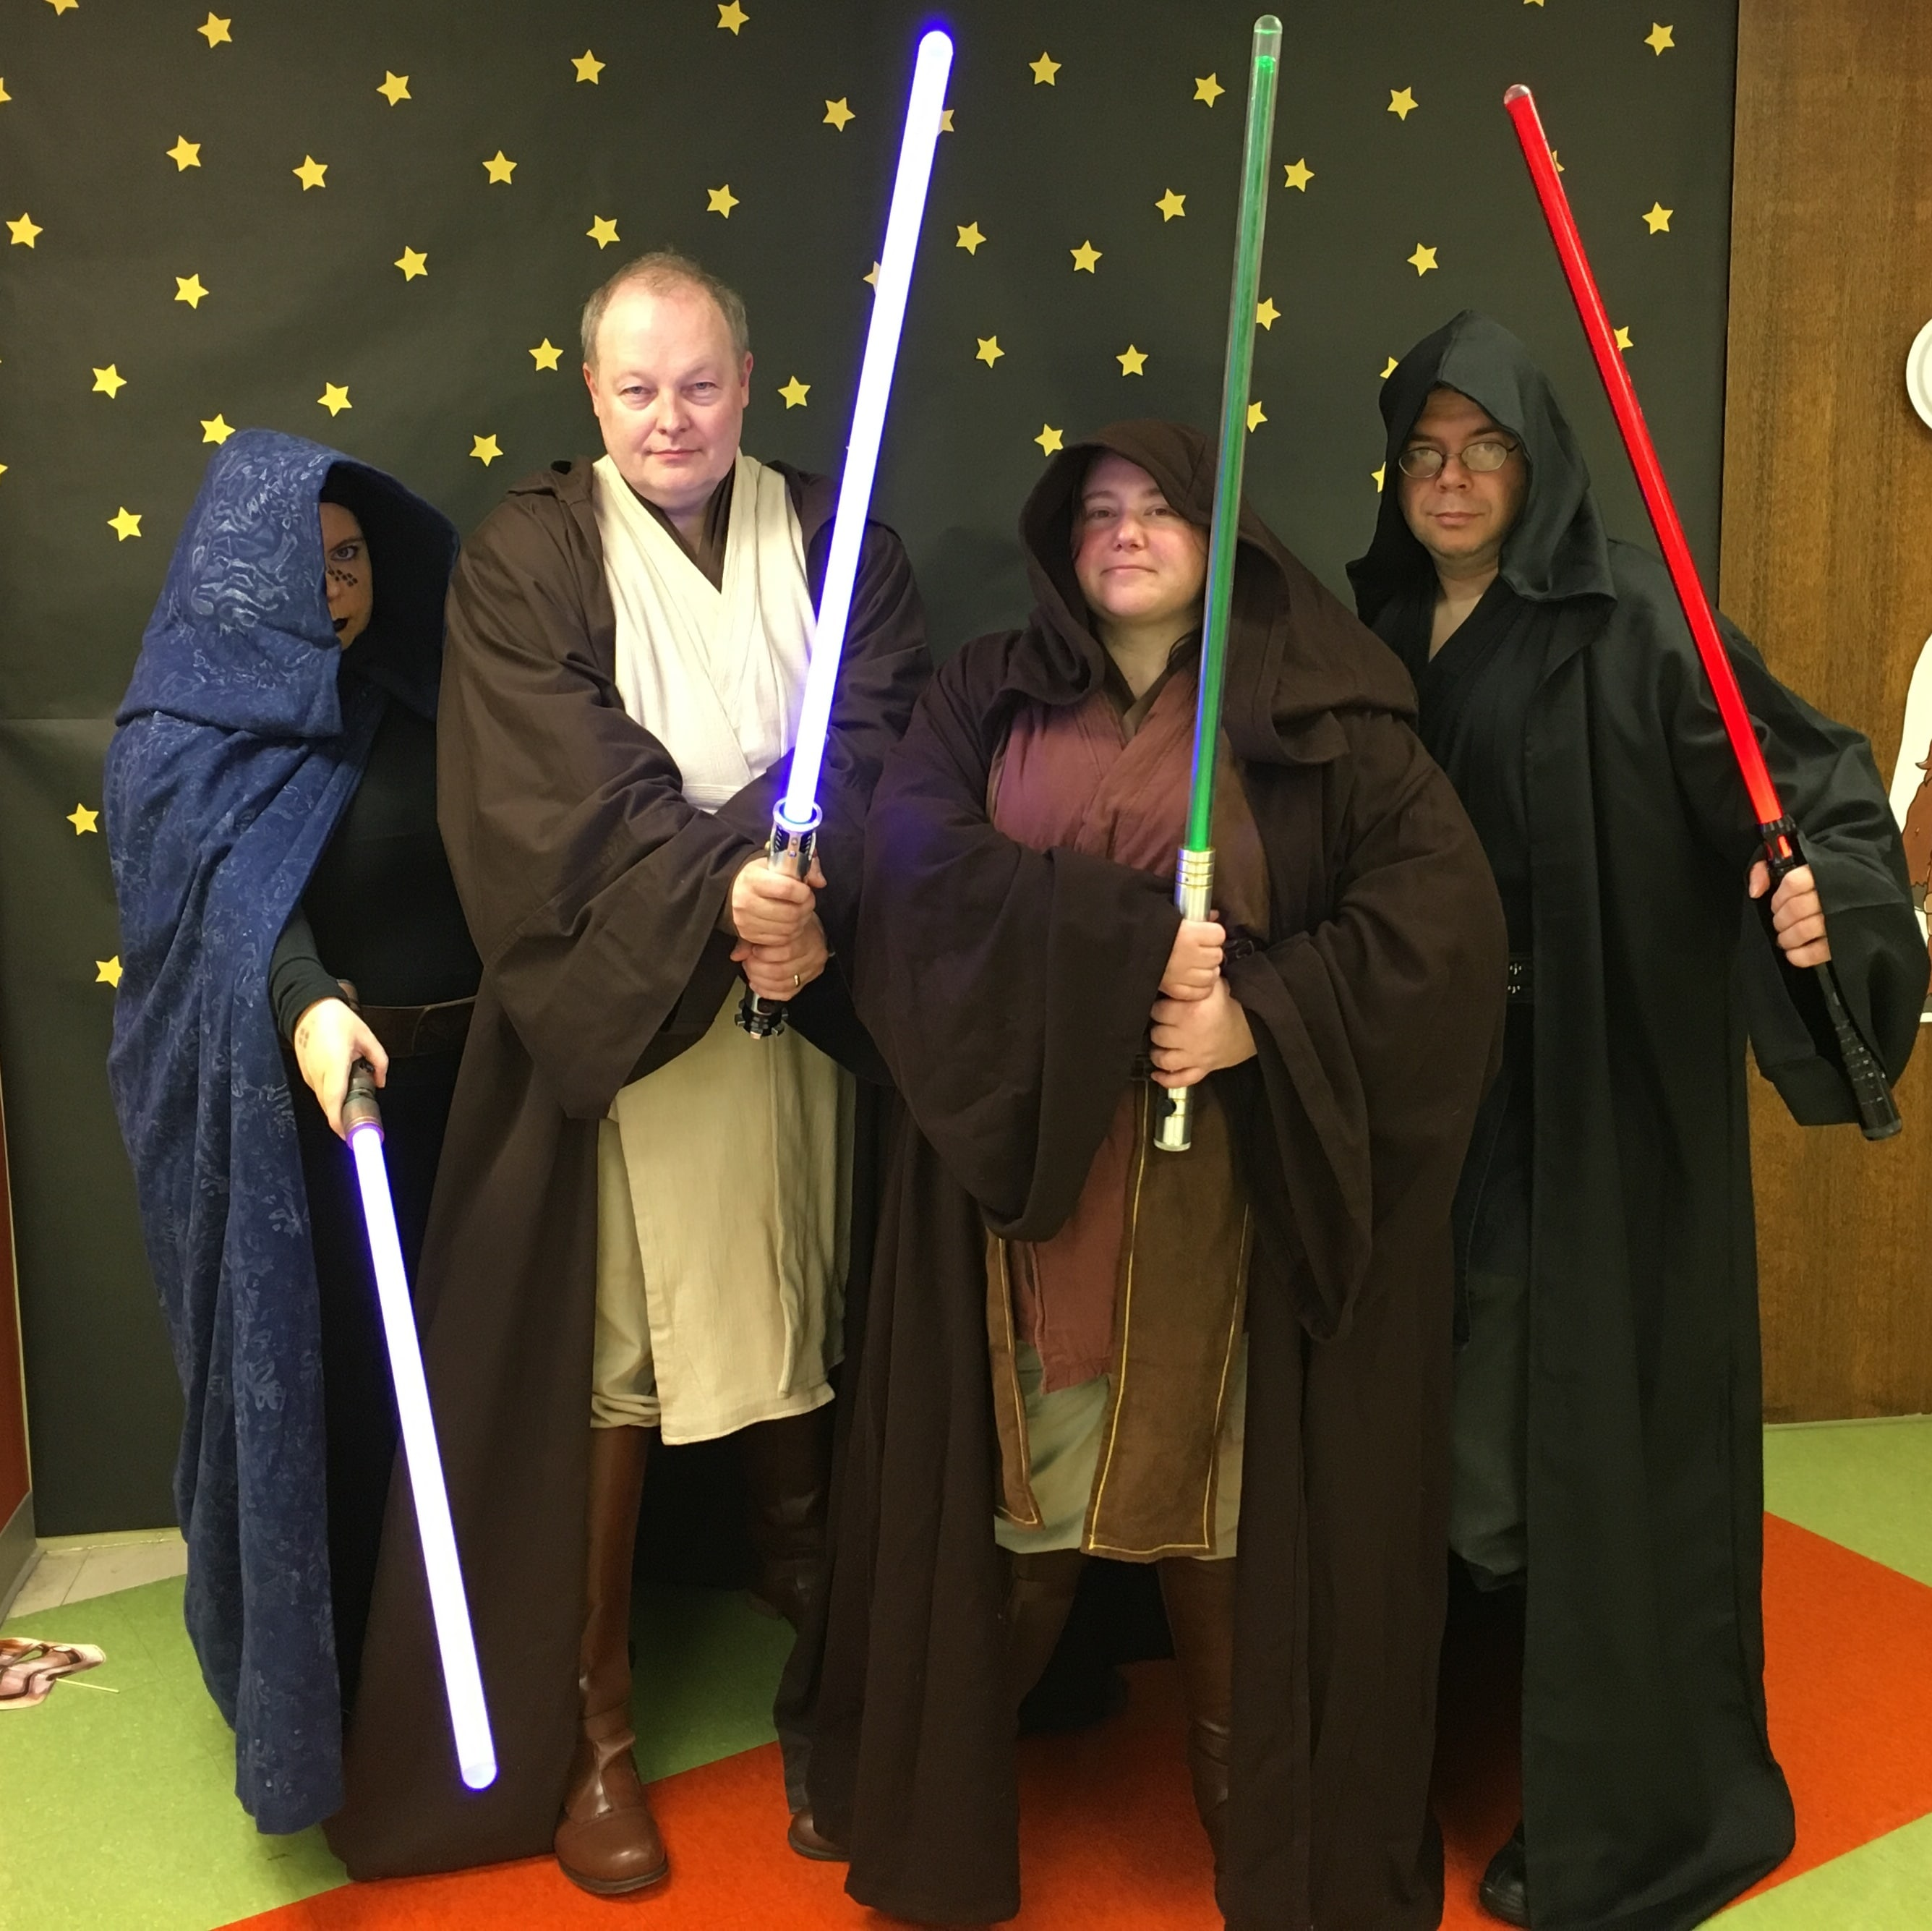 Capital CIty Jedi Knights at Star Wars Reads Day at the East Shore Library